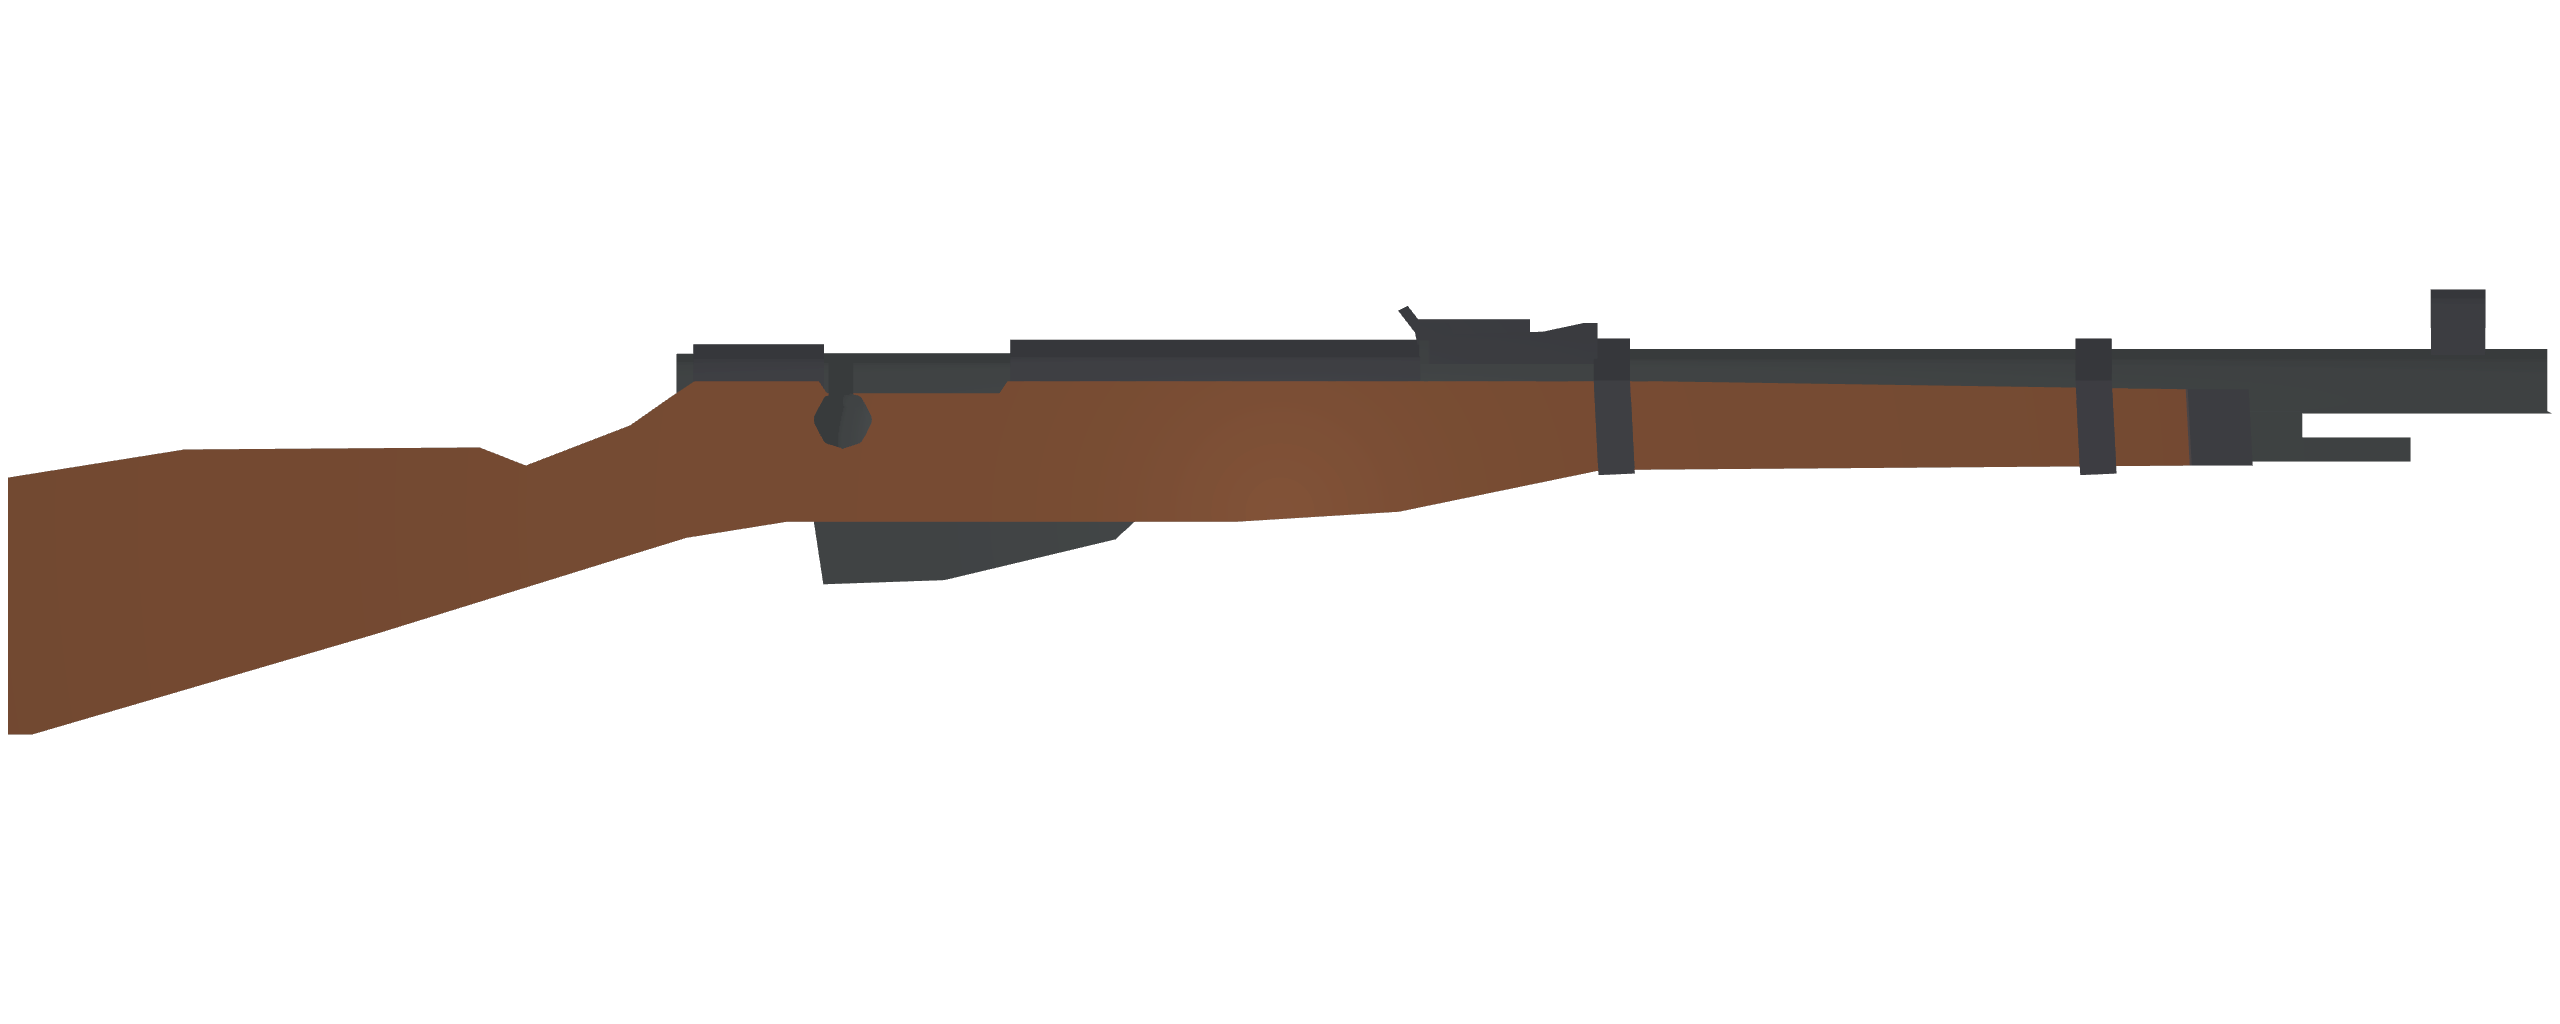 Unturned - All Weapons ID's for Uncreated Warfare Mods - Russian Weapons - 59F3EFE